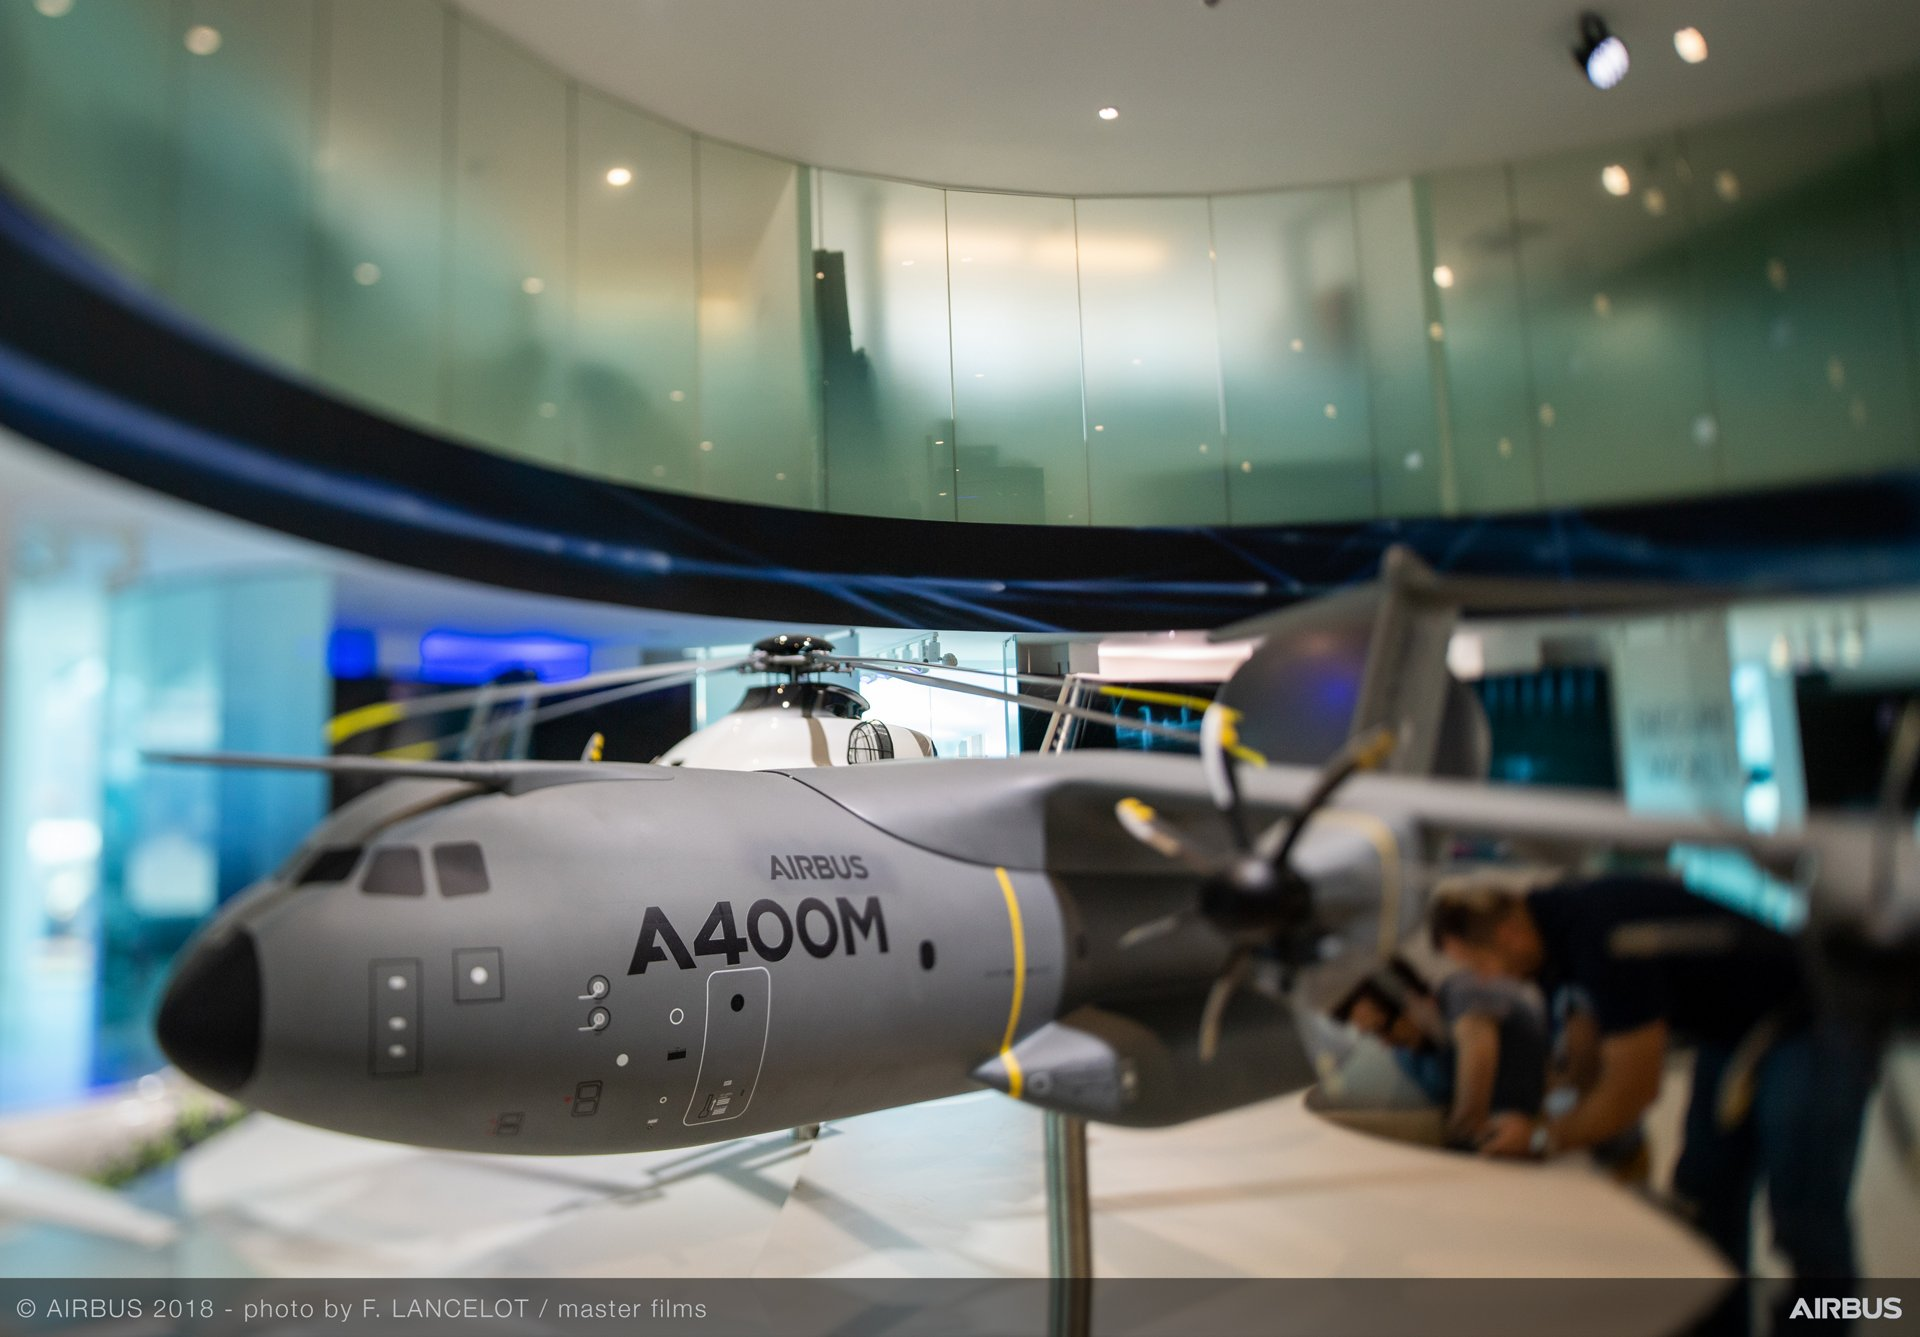 A400M model 